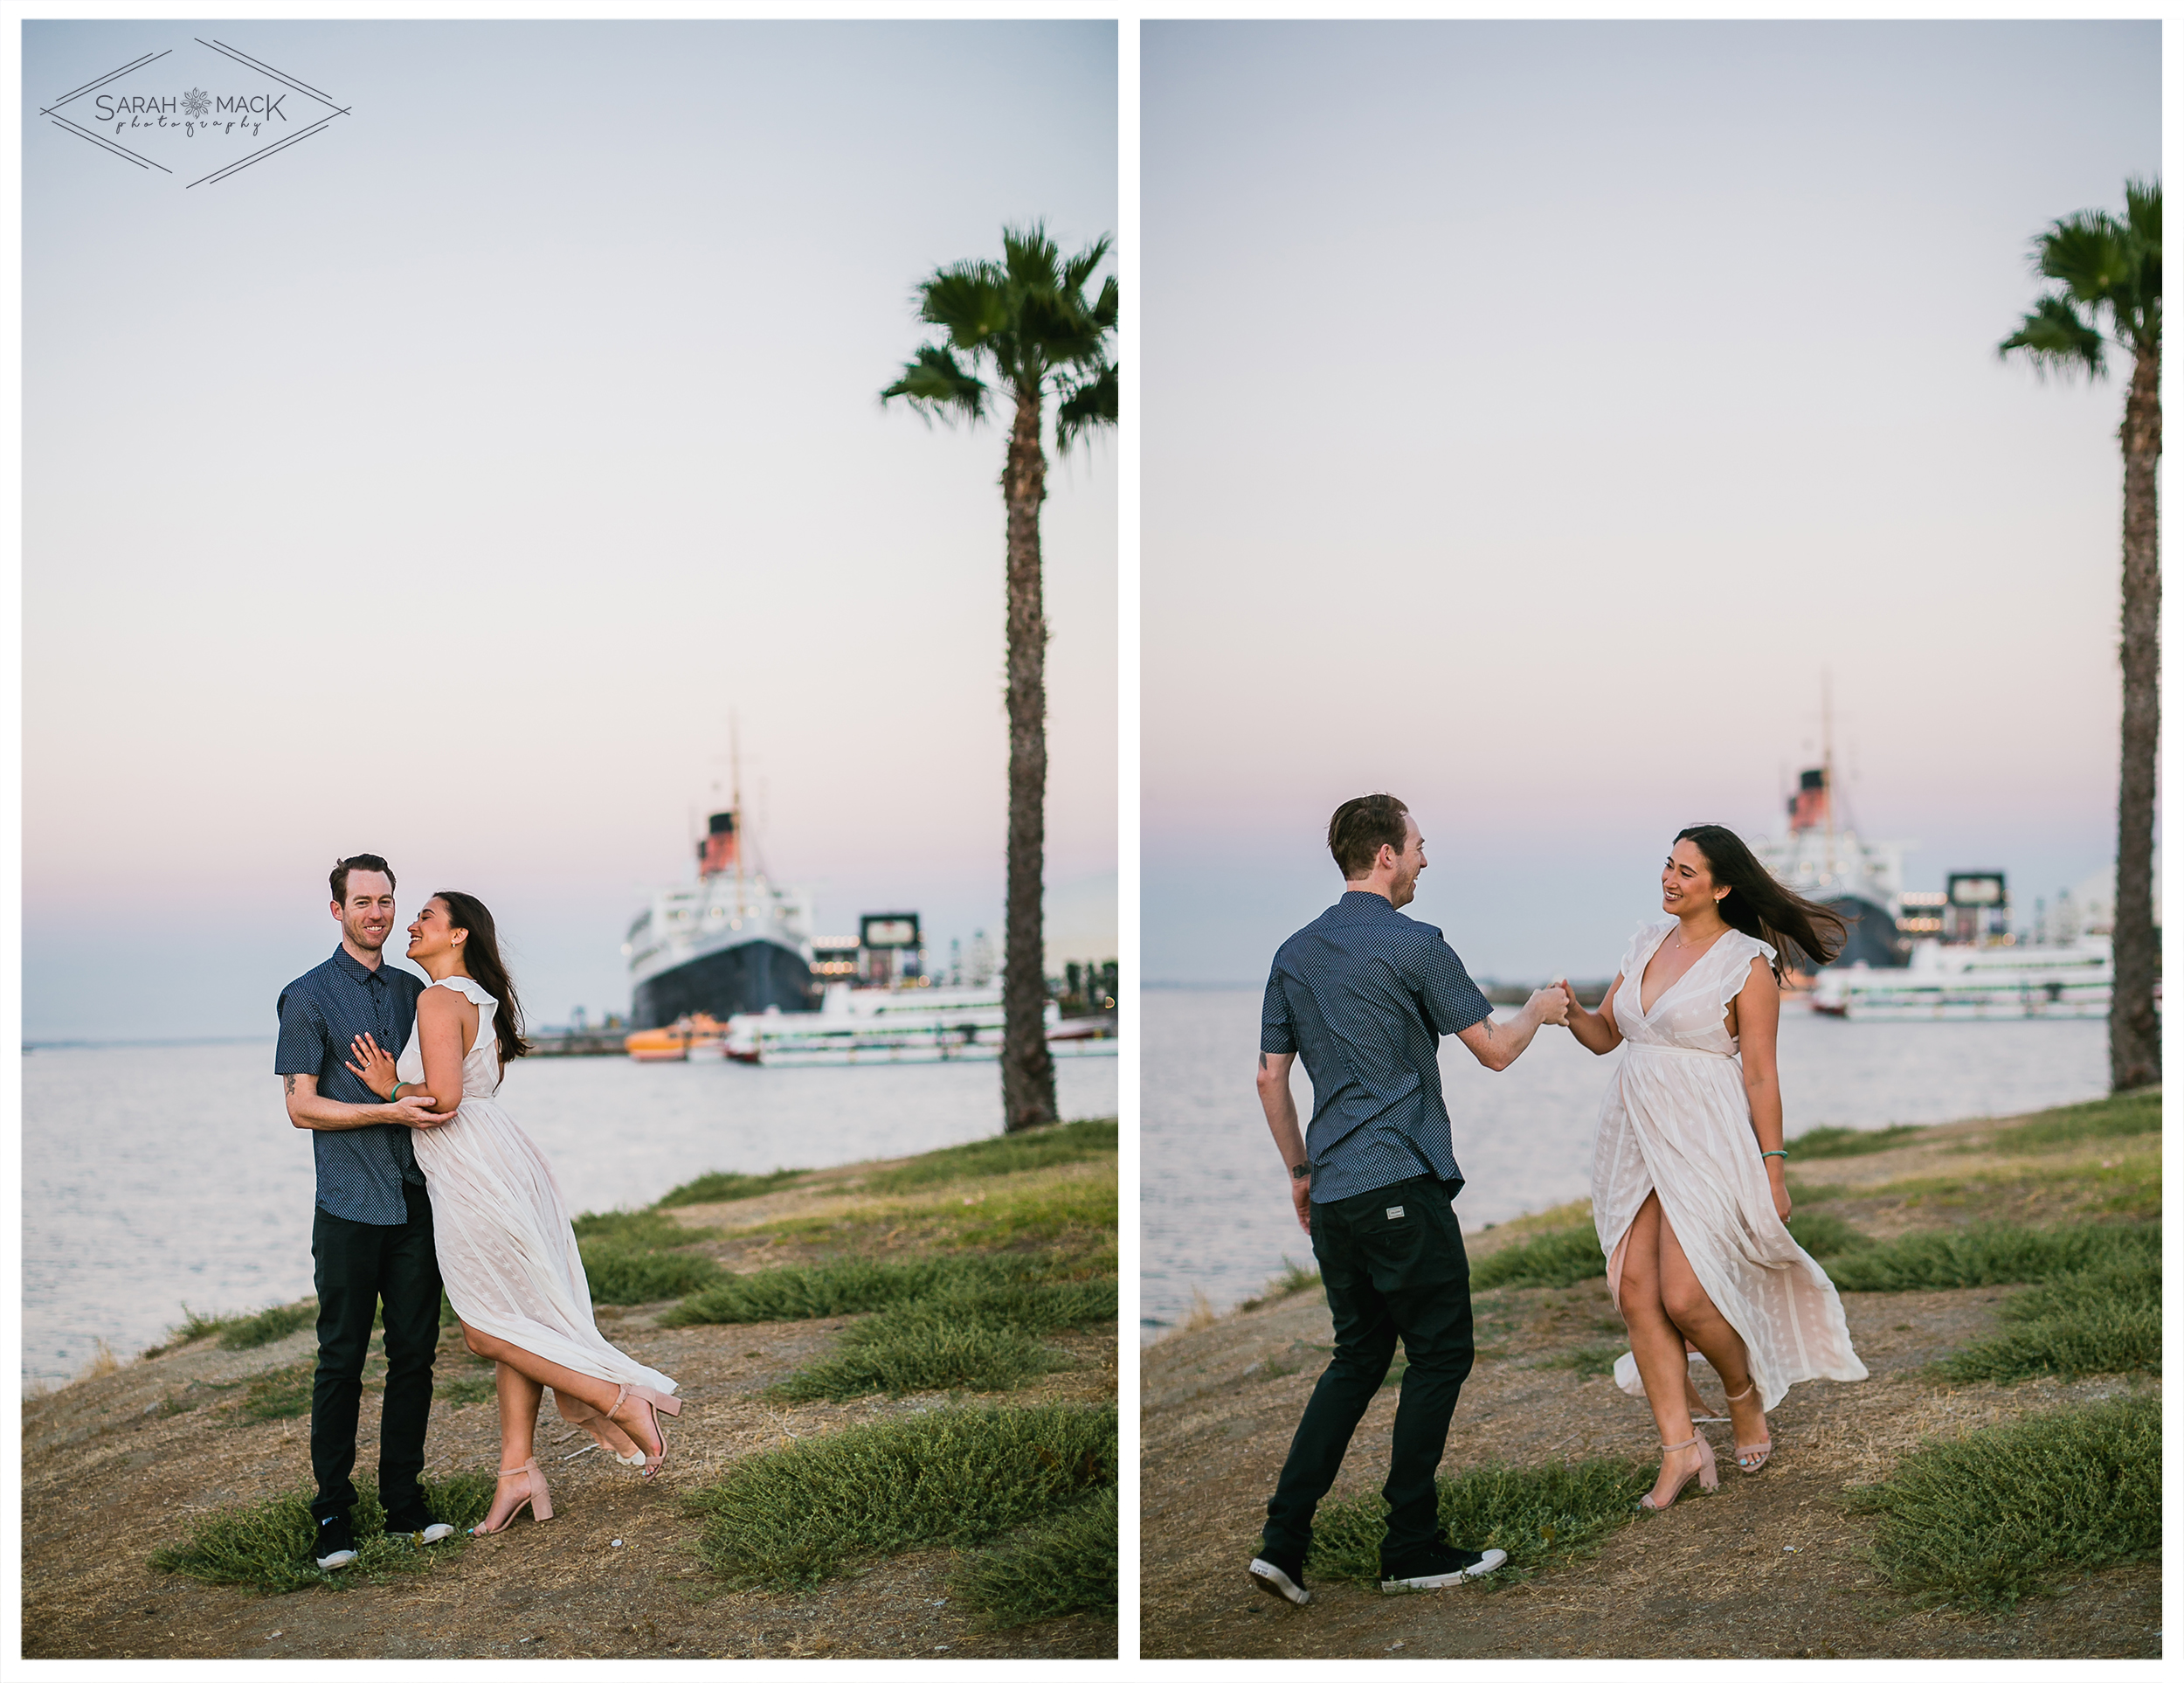 SE-Long-Beach-Engagement-Photography-14.jpg